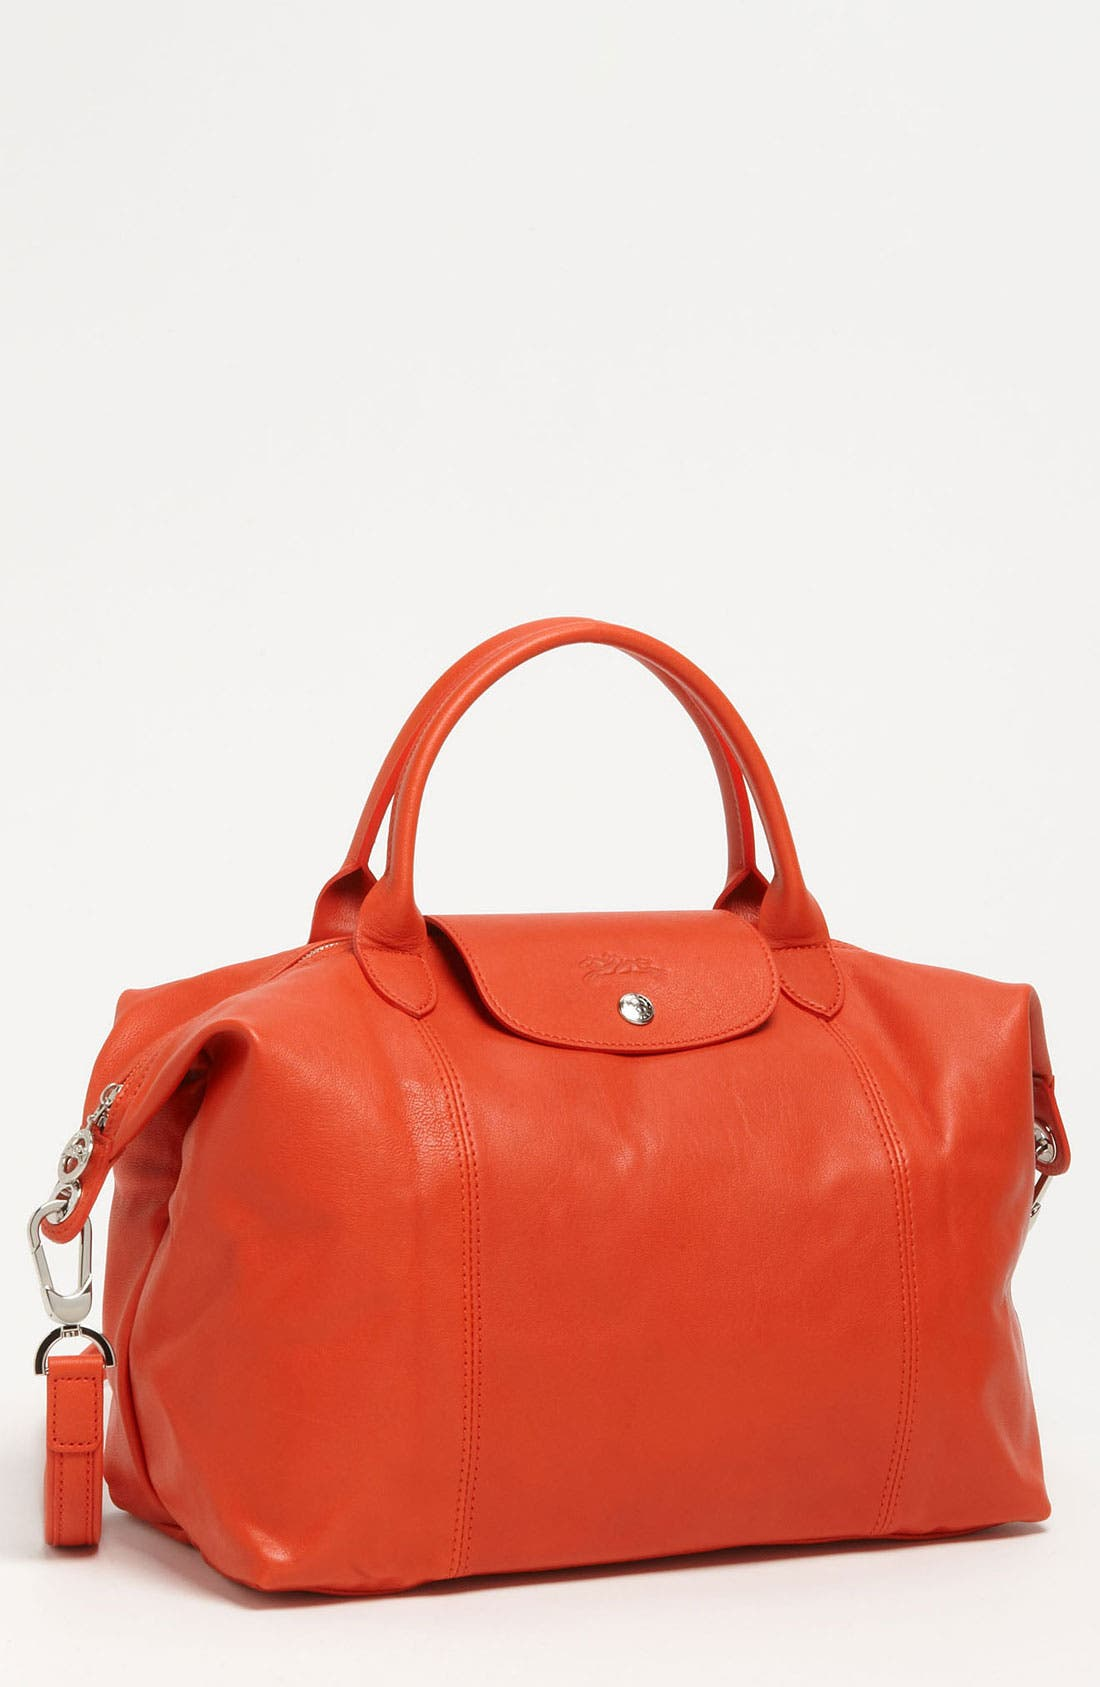 Medium 'Le Pliage Cuir' Leather Top Handle Tote,                             Main thumbnail 26, color,